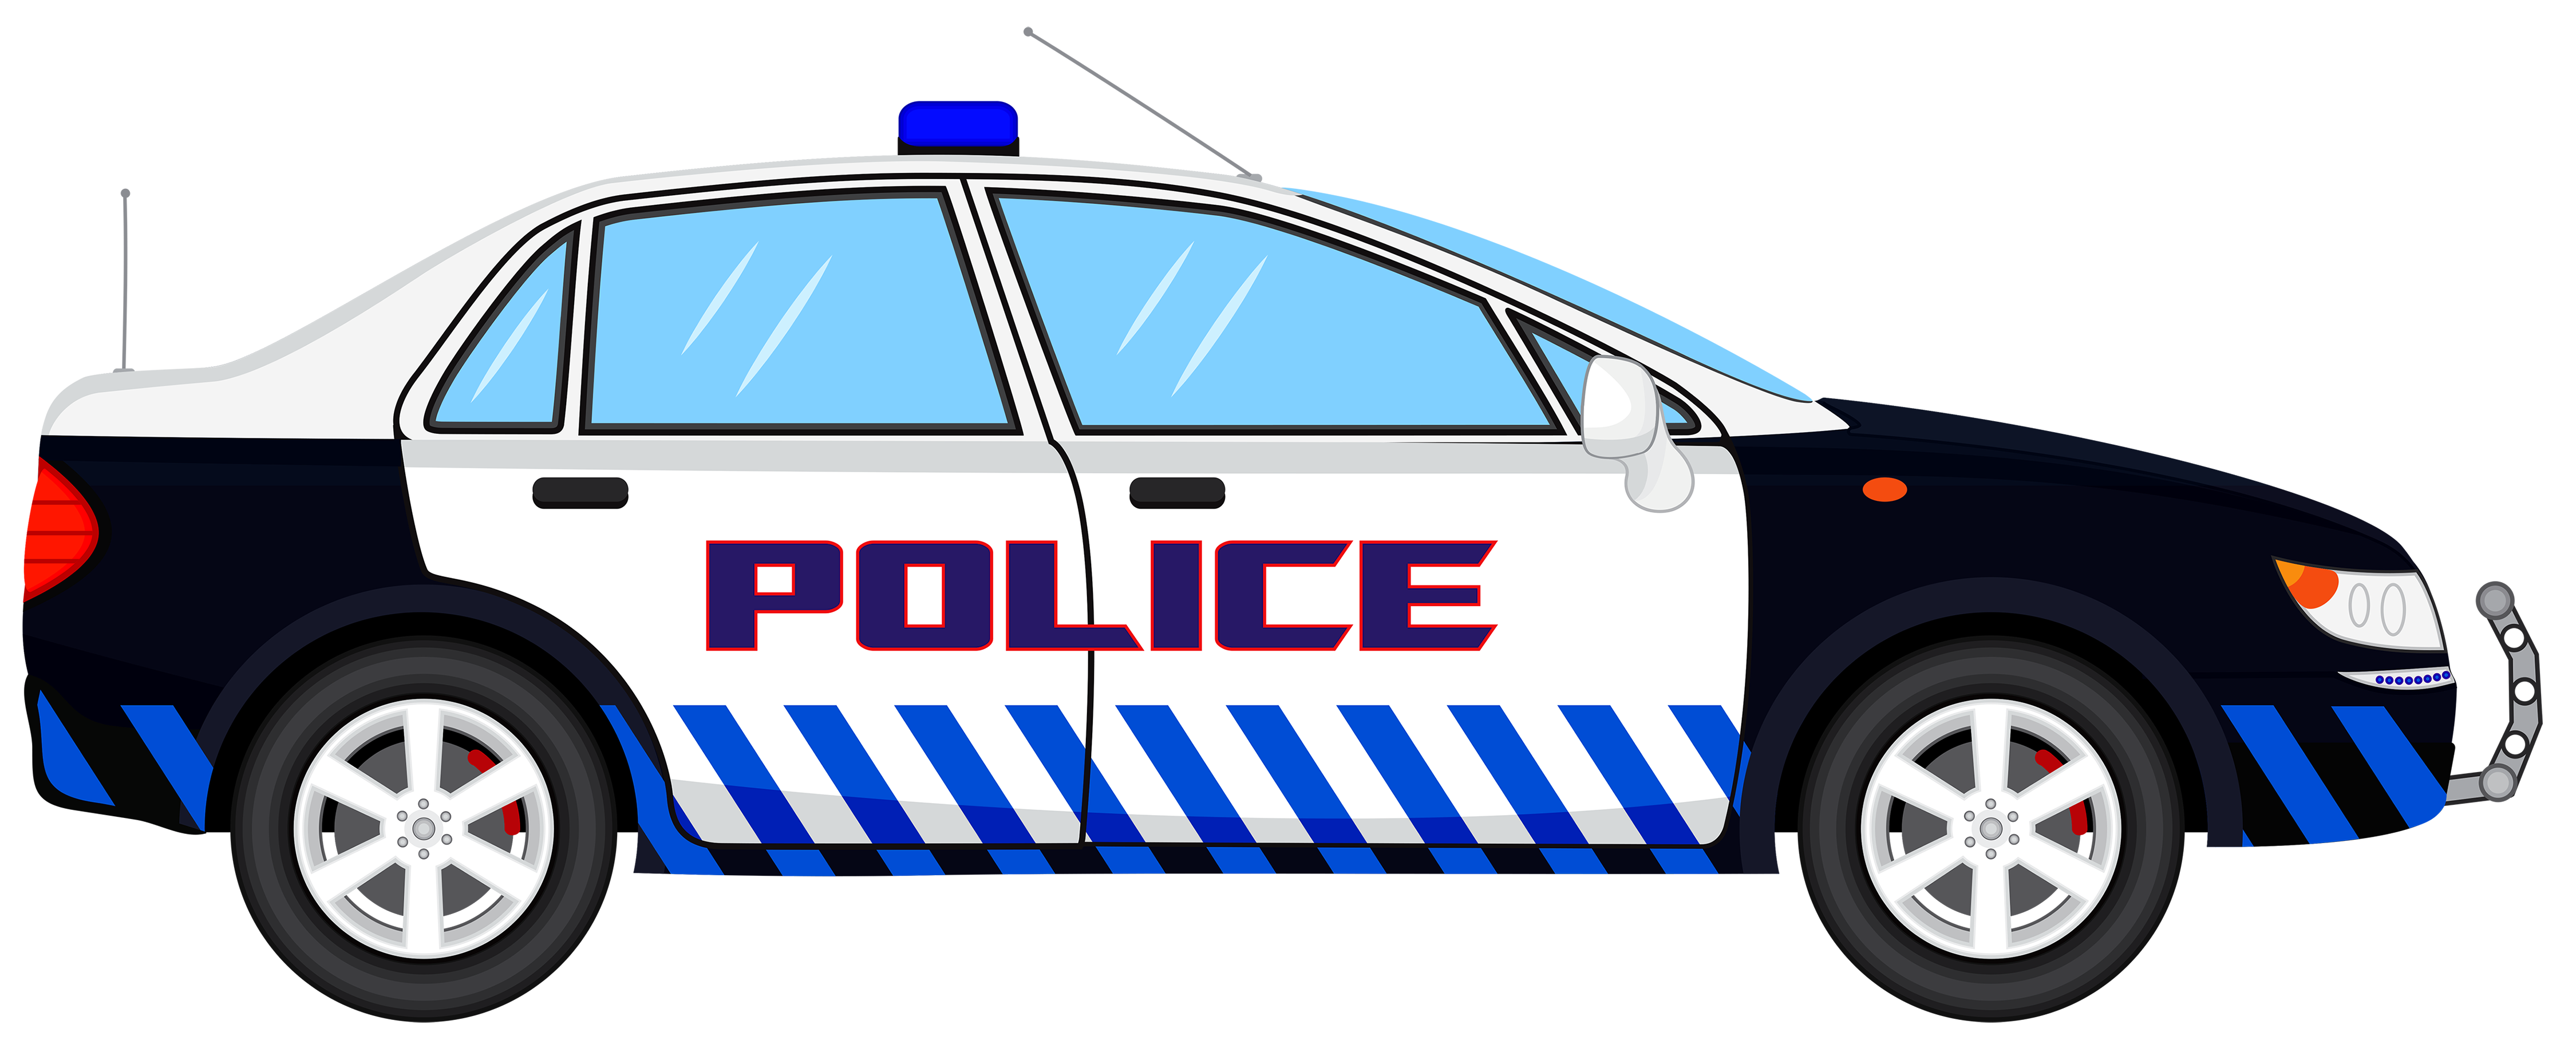 Working on car clipart png transparent library Blue police car clipart - ClipartFest png transparent library